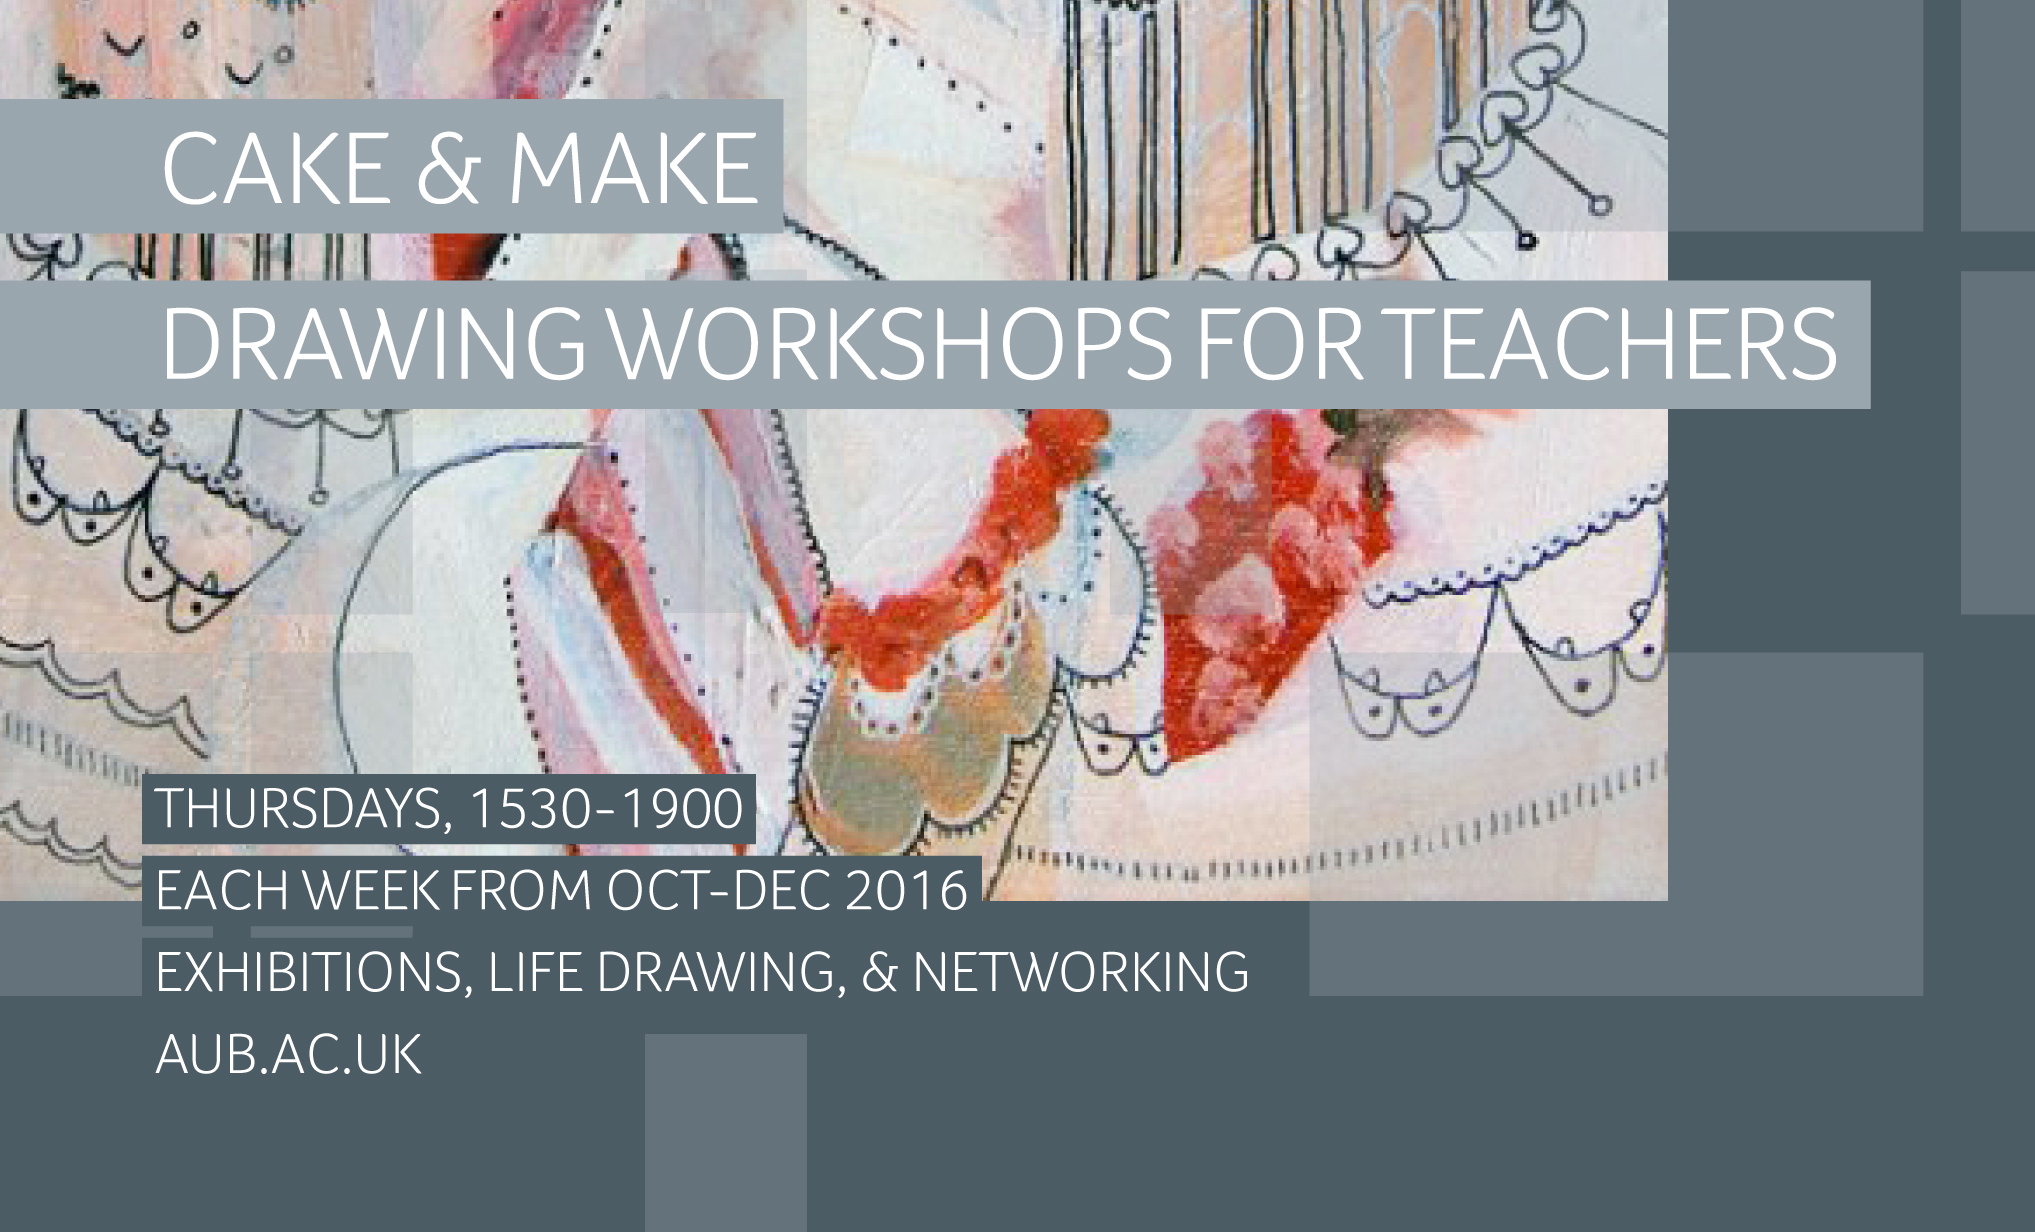 2905Free Drawing Workshops for Teachers at AUB